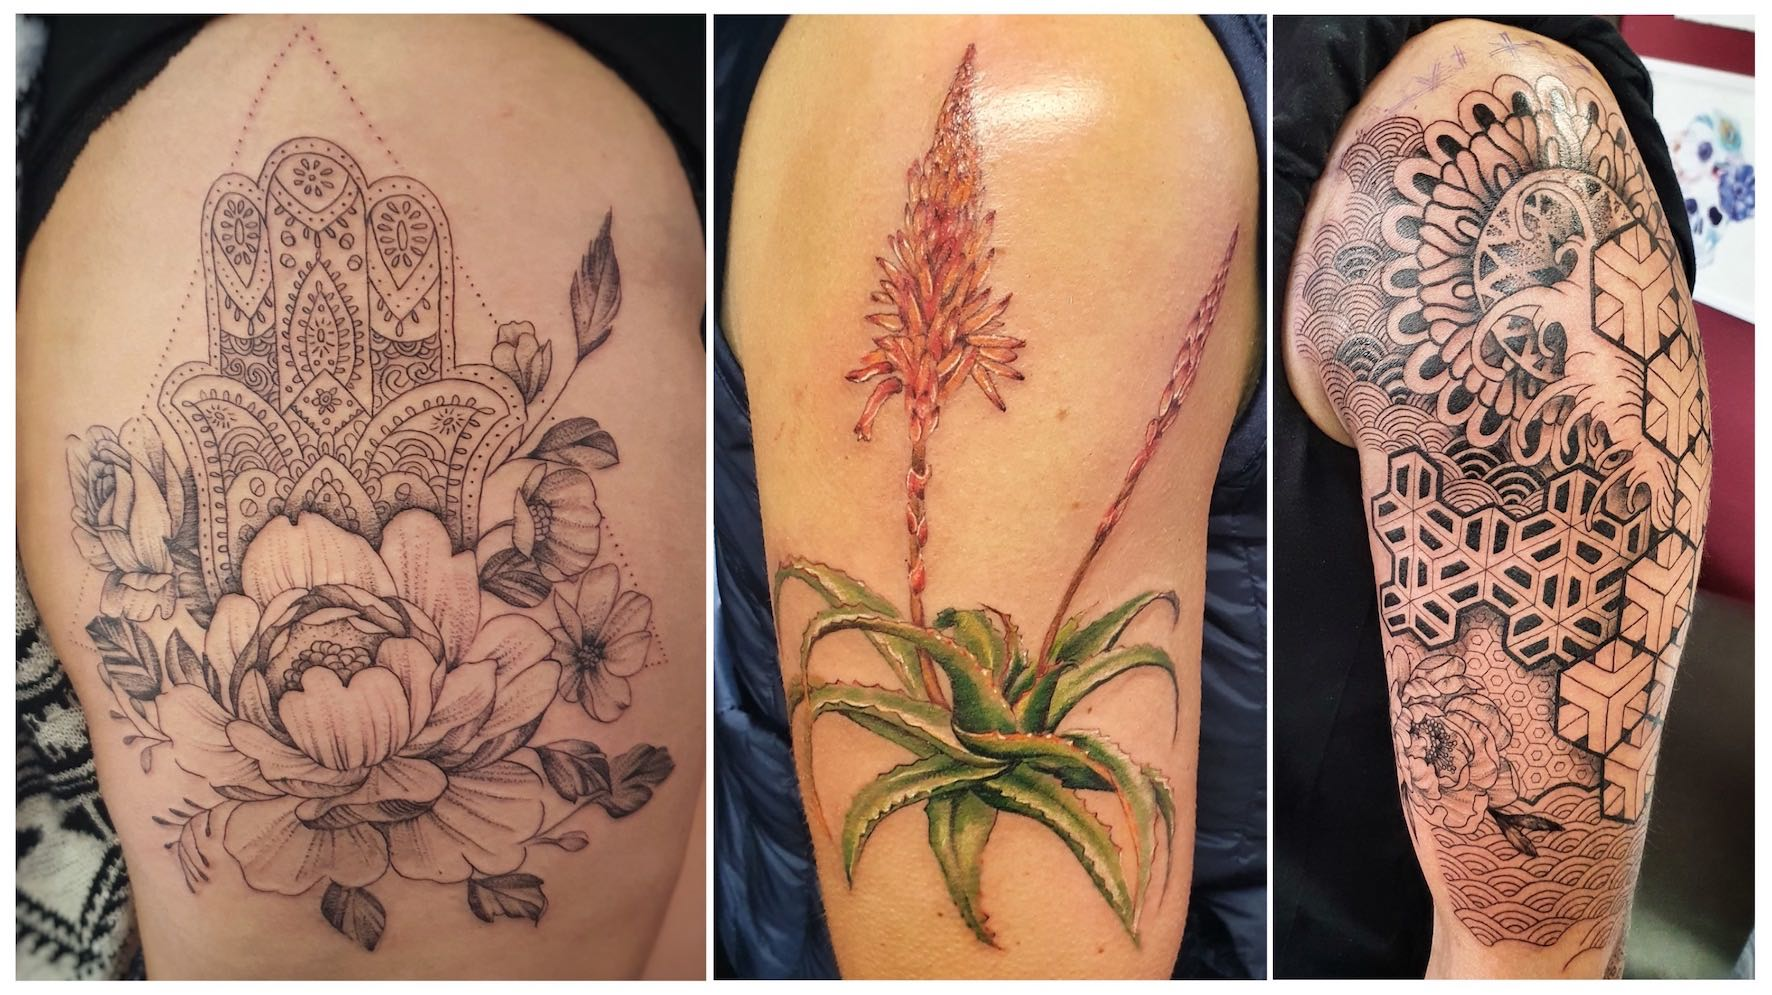 A selection of tattoos done by the talented Ting Thorne